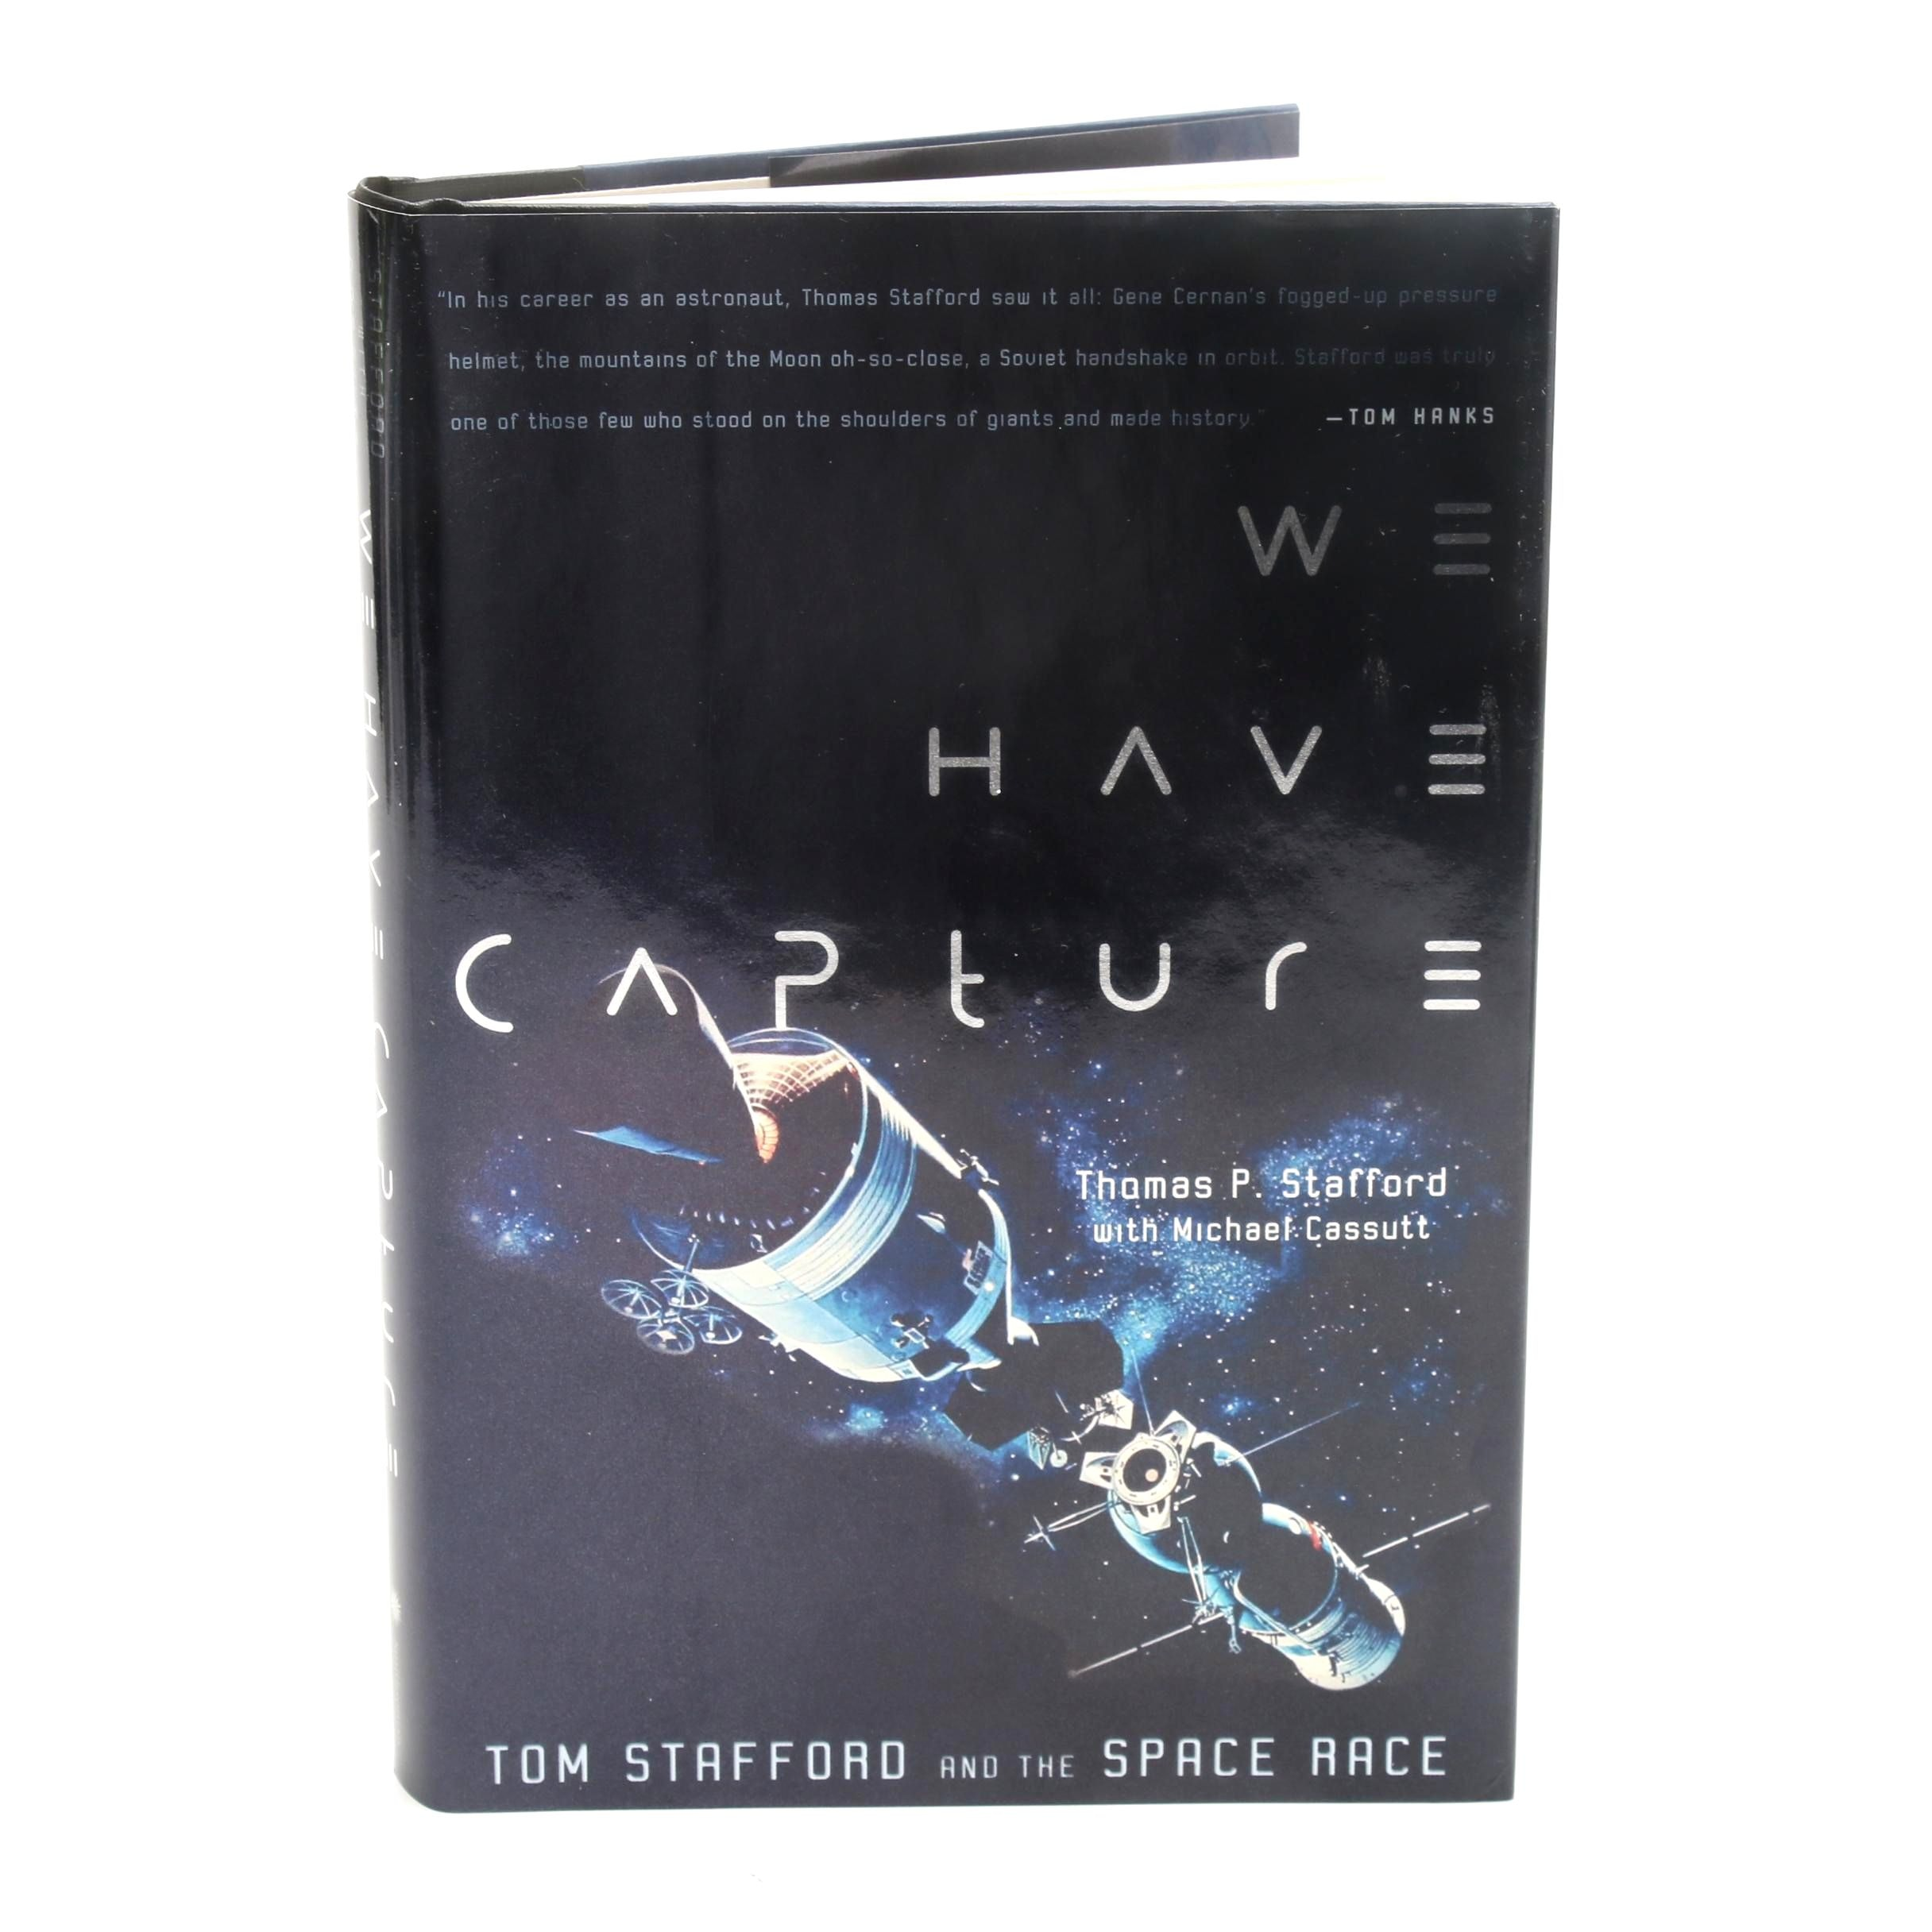 Tom Stafford Signed Space Race We Have Capture Book